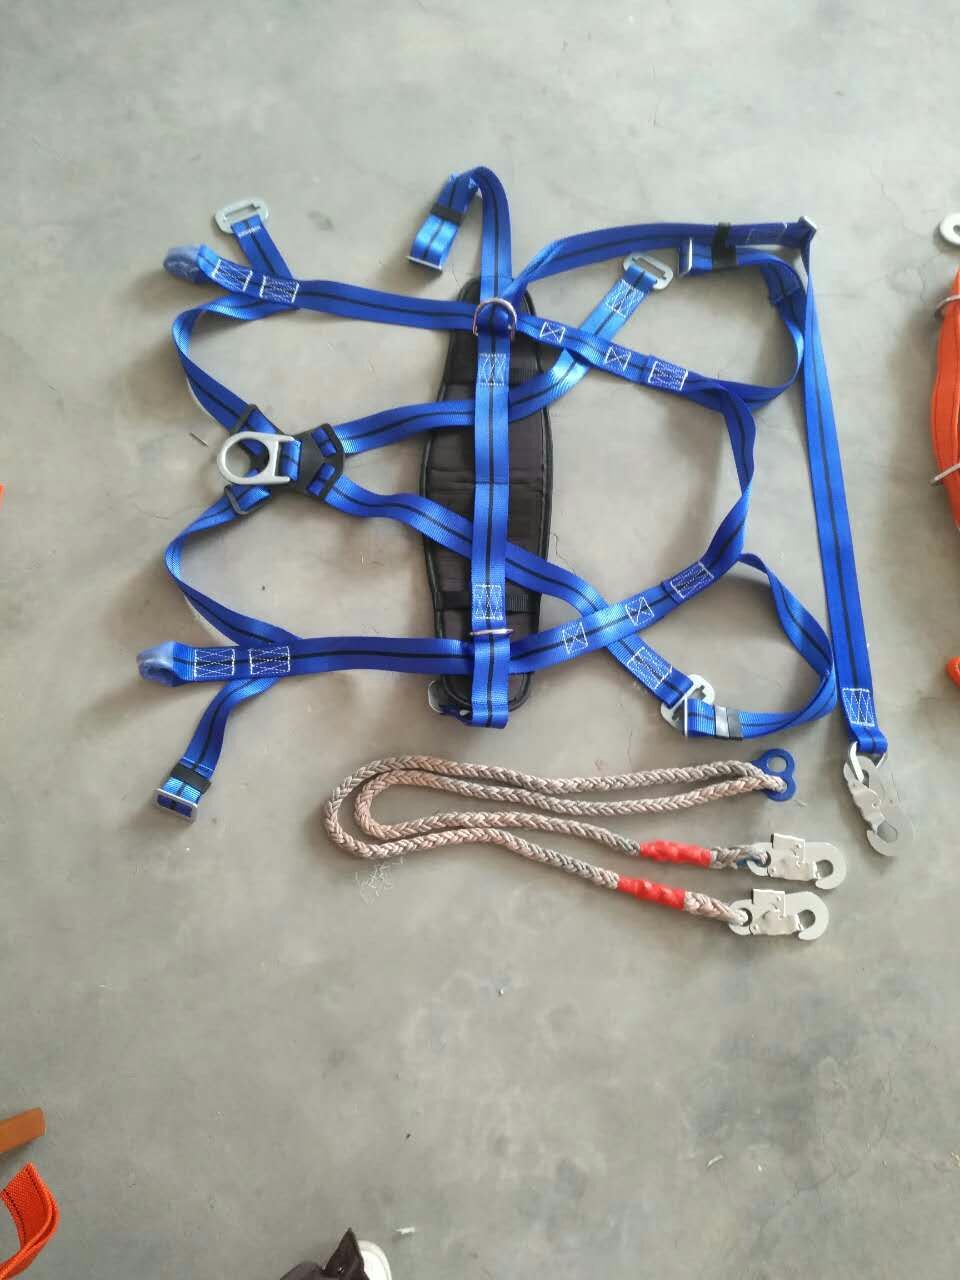 Construction industrial safety belt